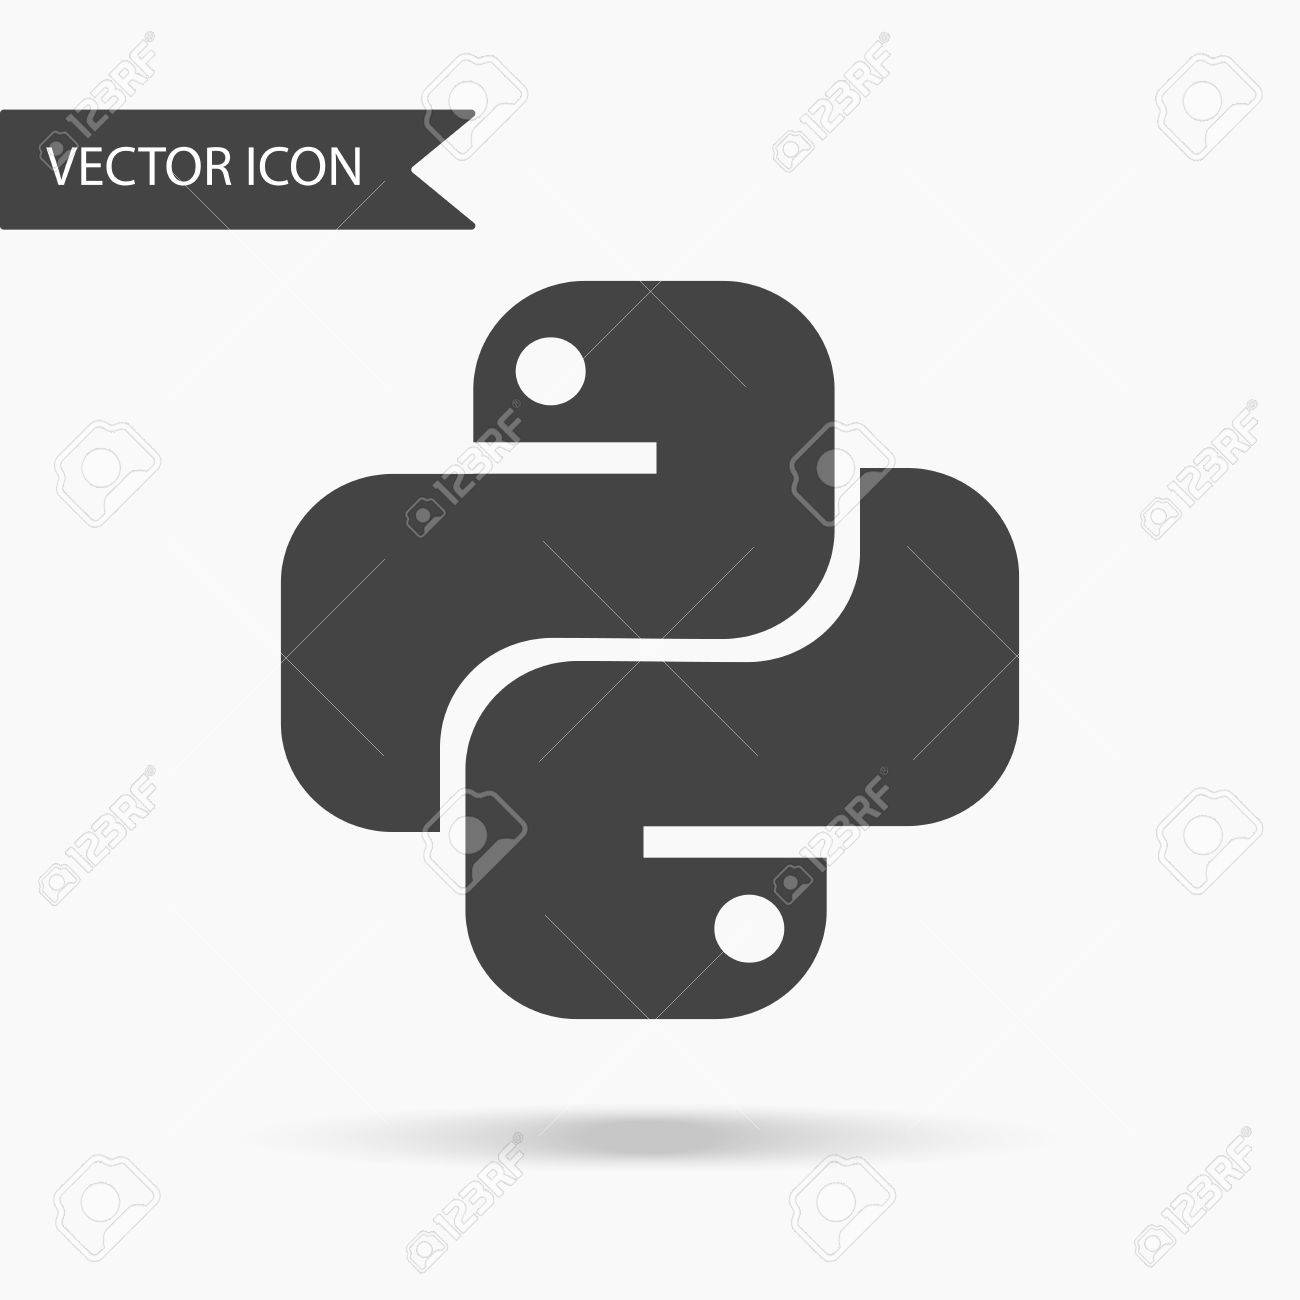 Vector Illustration Of An Icon Of The Python Programming Language ...